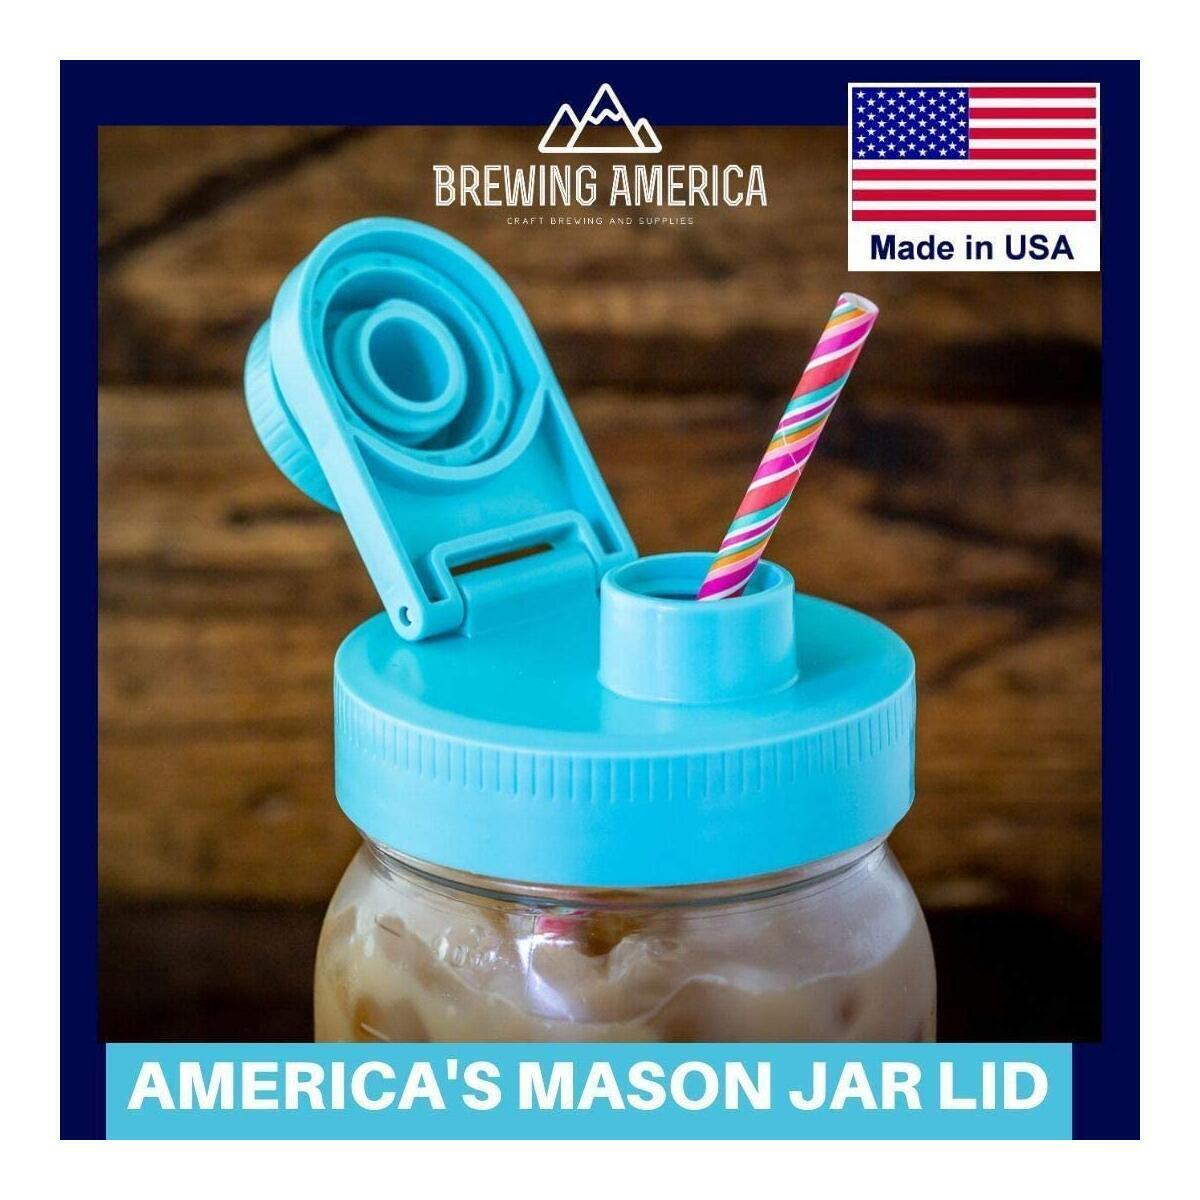 Mason Jar Lids Wide Mouth Plastic 1 Pack BLACK - With Flip Cap Screw Top Pouring Spout and Drink Hole - America's Mason Jar Screw Top Lid - Fits Kerr and Ball Canning Jars - MADE IN USA (BLACK, 1)